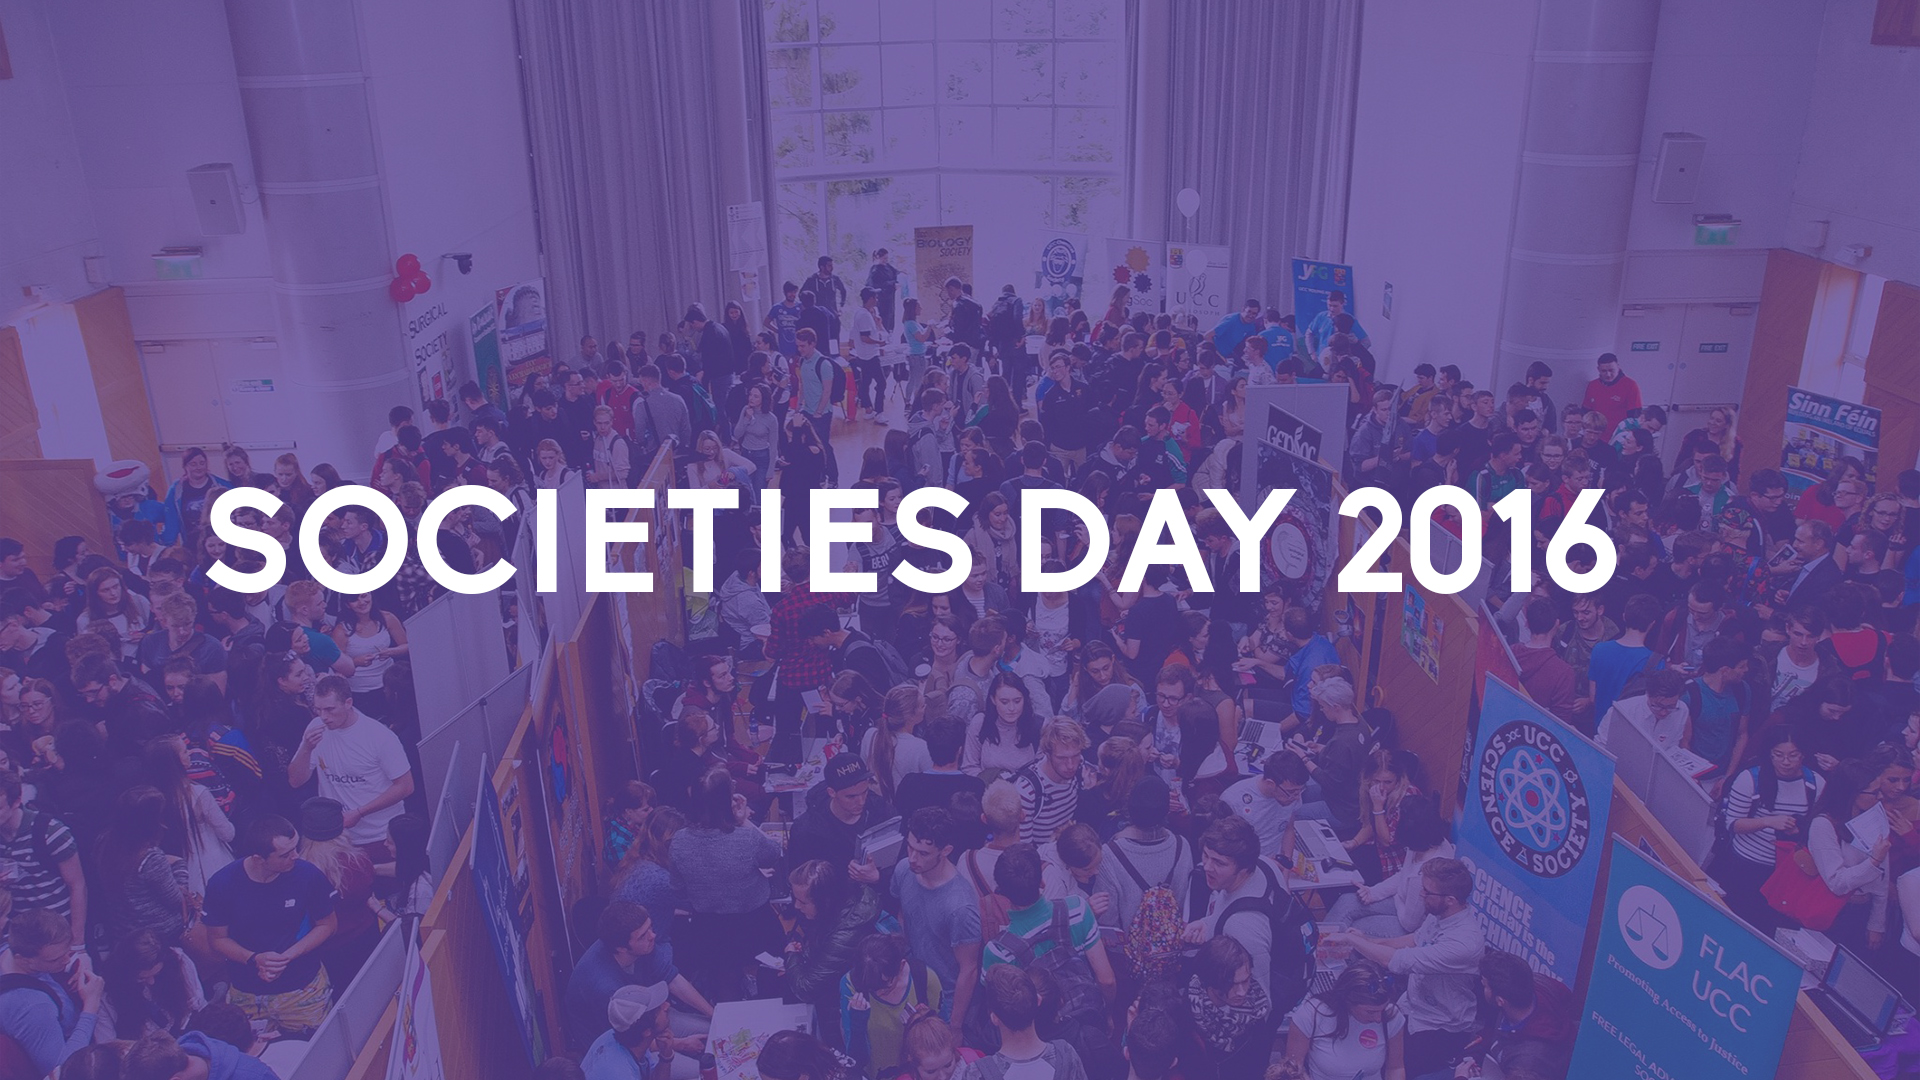 Societies Day2016